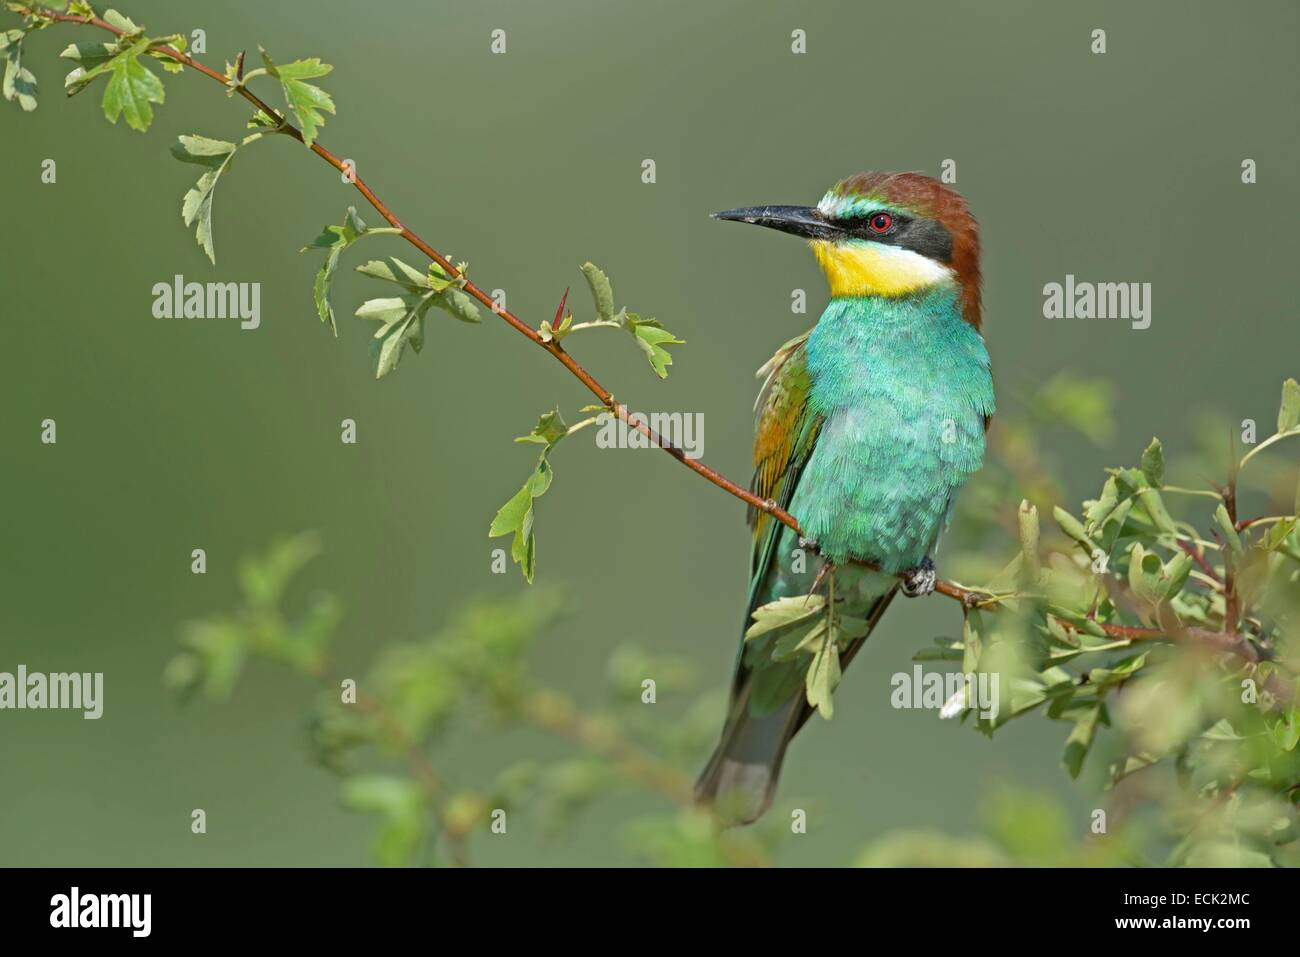 France, Jura, low Doubs valley, Petit Noir, European Bee eater (Merops apiaster) colony nesting birds in the banks - Stock Image